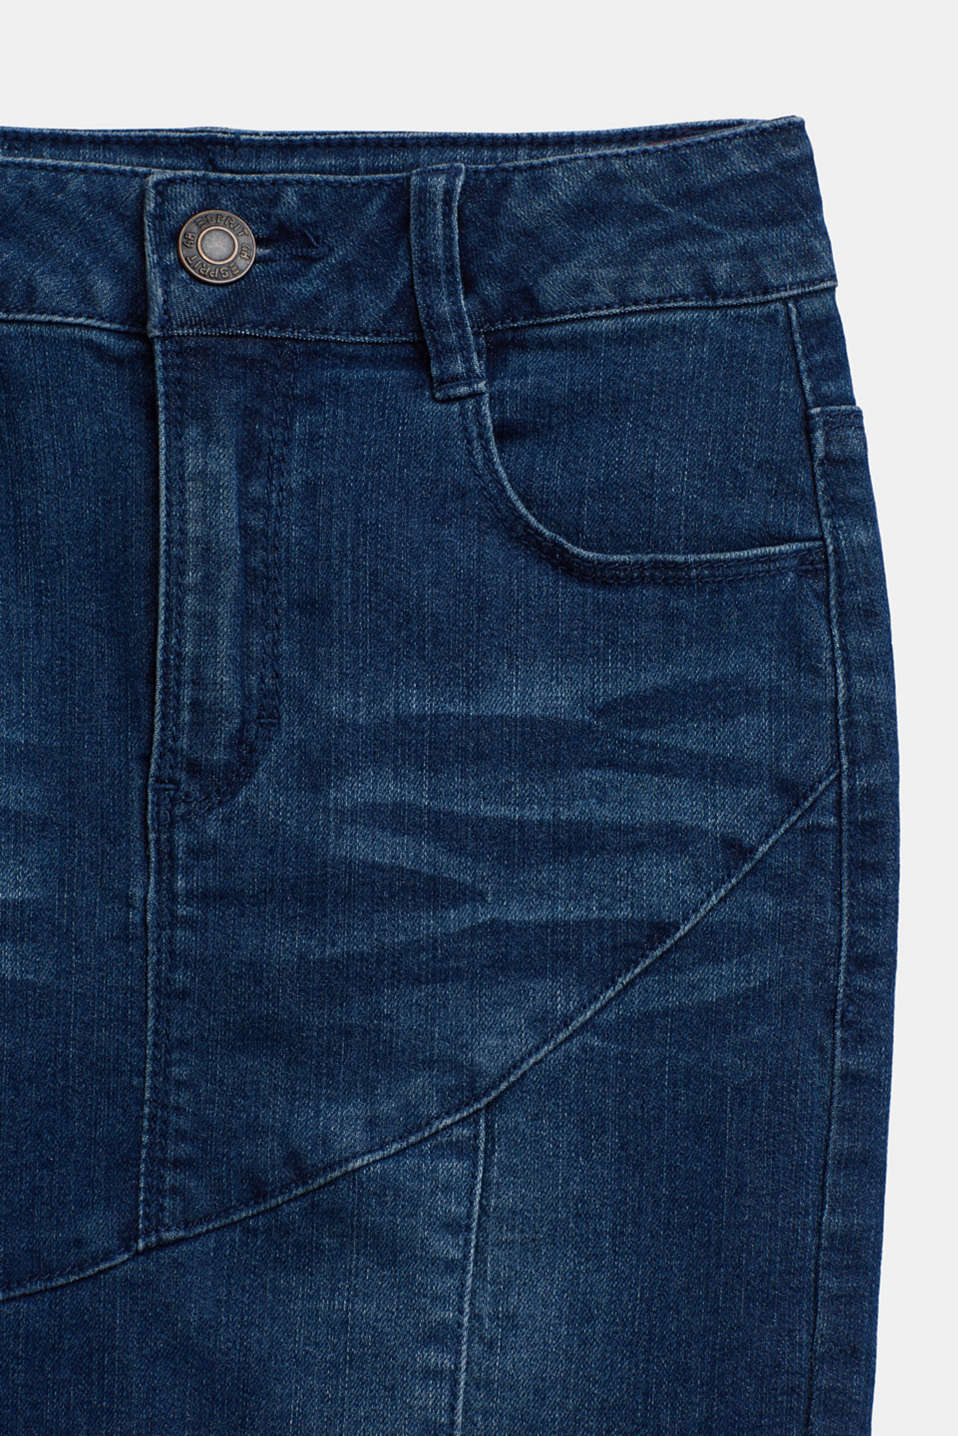 Super stretch denim skirt, LCBRIGHT BLUE DE, detail image number 2